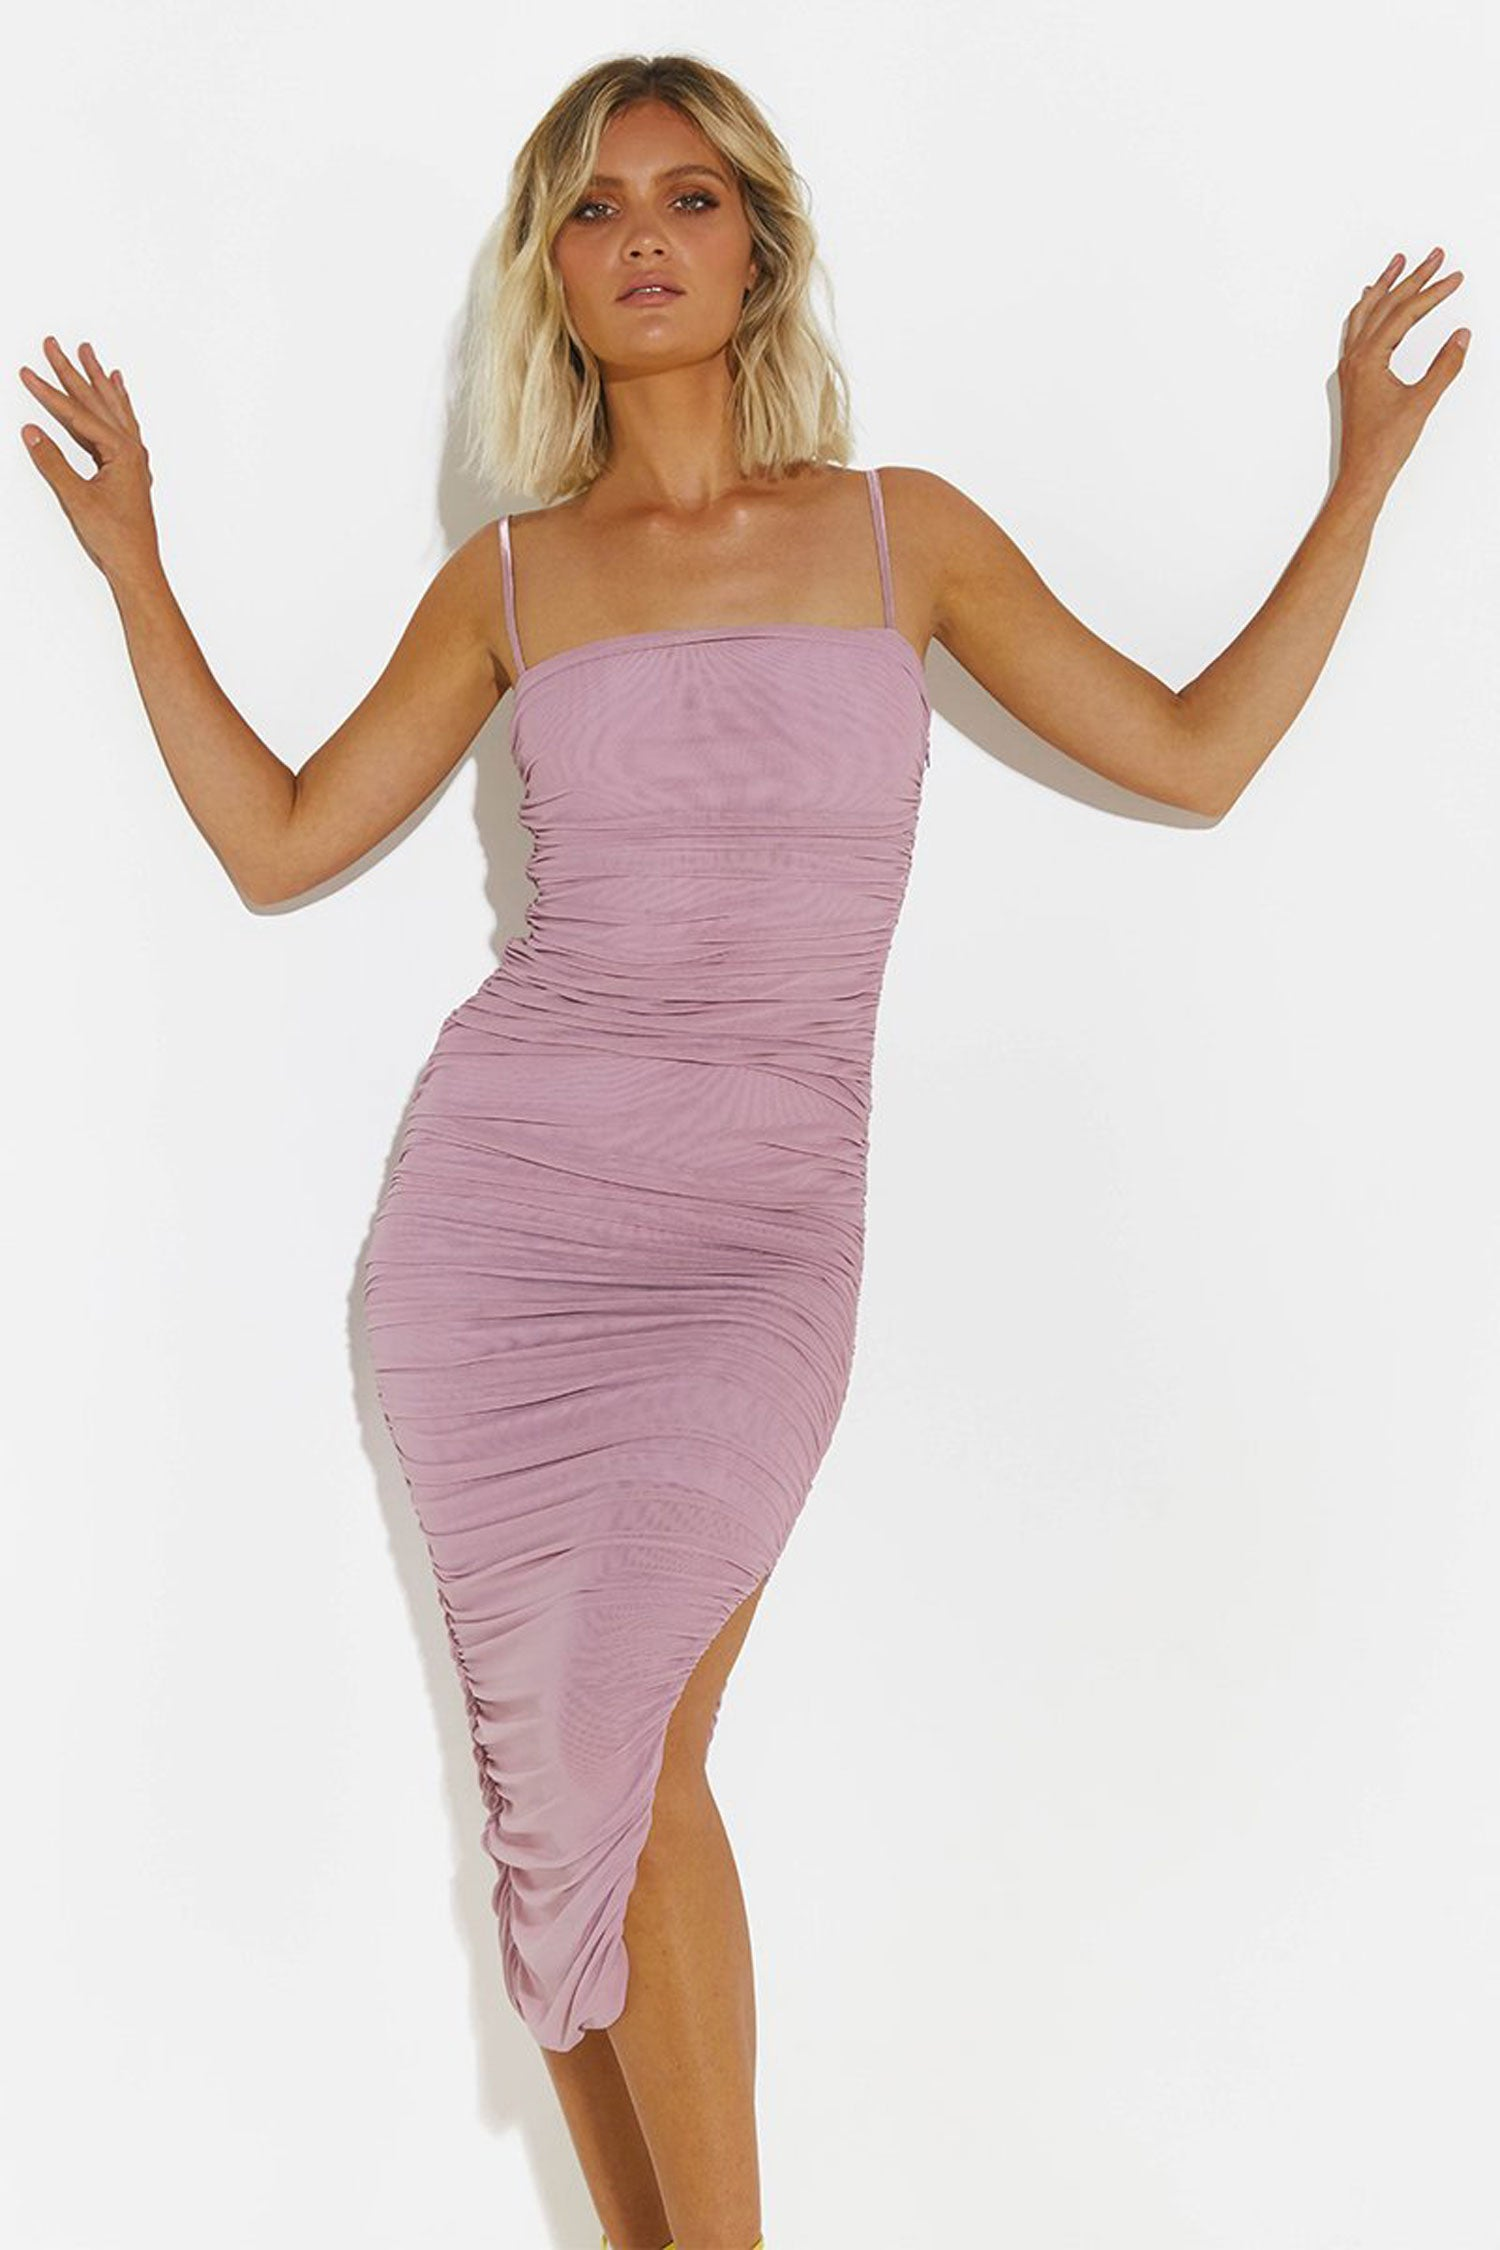 SNDYS Simone Dress - Mauve